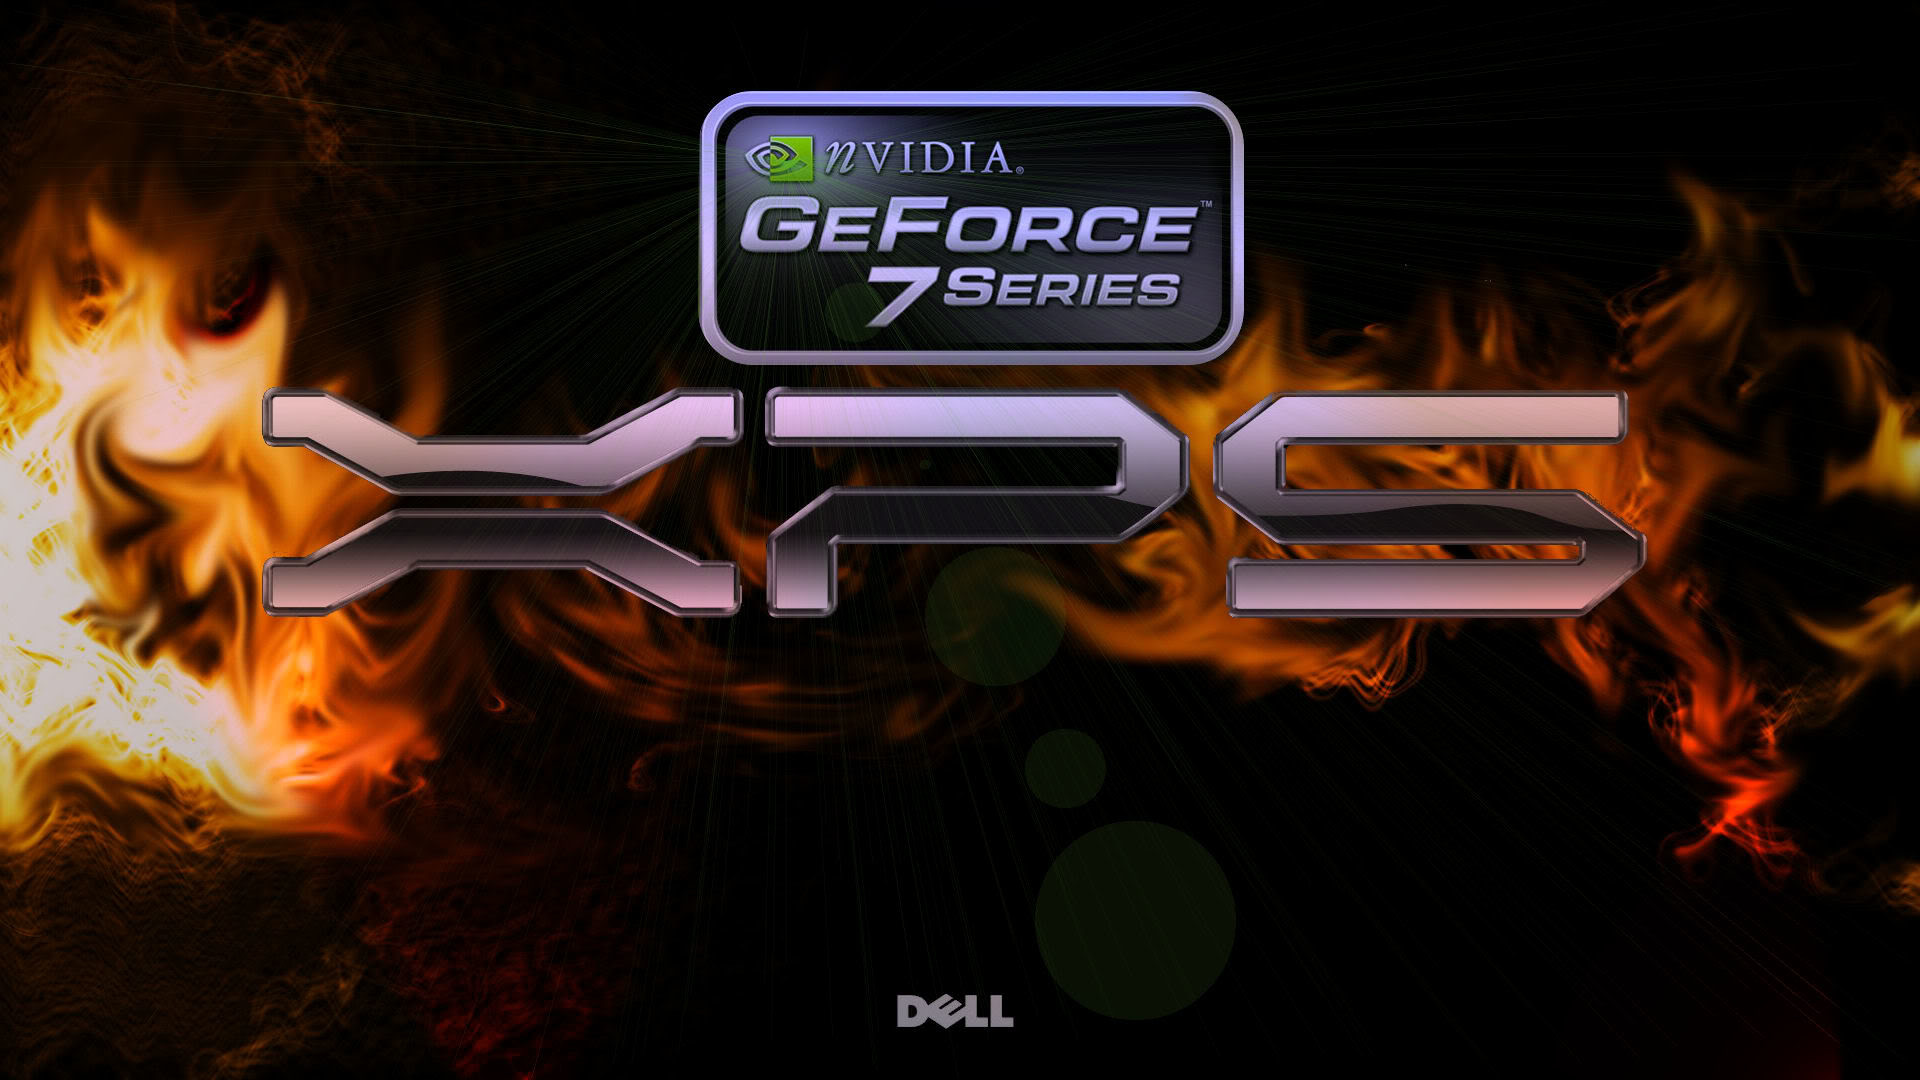 1920x1080 Carbon Fiber Widescreen Xps Page 202470 Wallpaper wallpaper